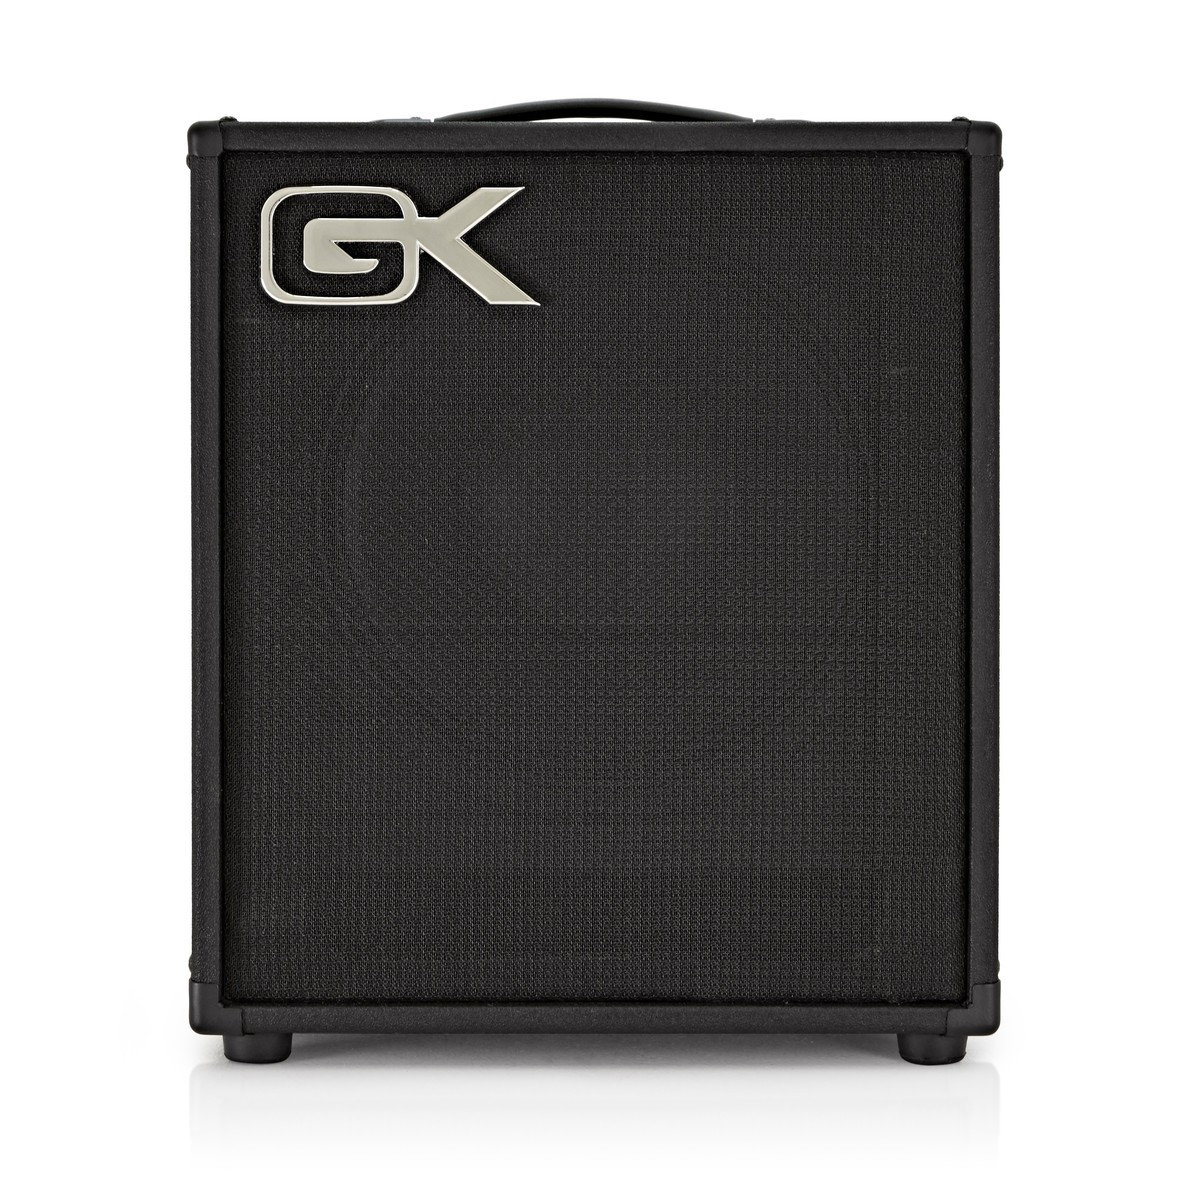 Click to view product details and reviews for Gallien Krueger Mb112 Ii Bass Combo.